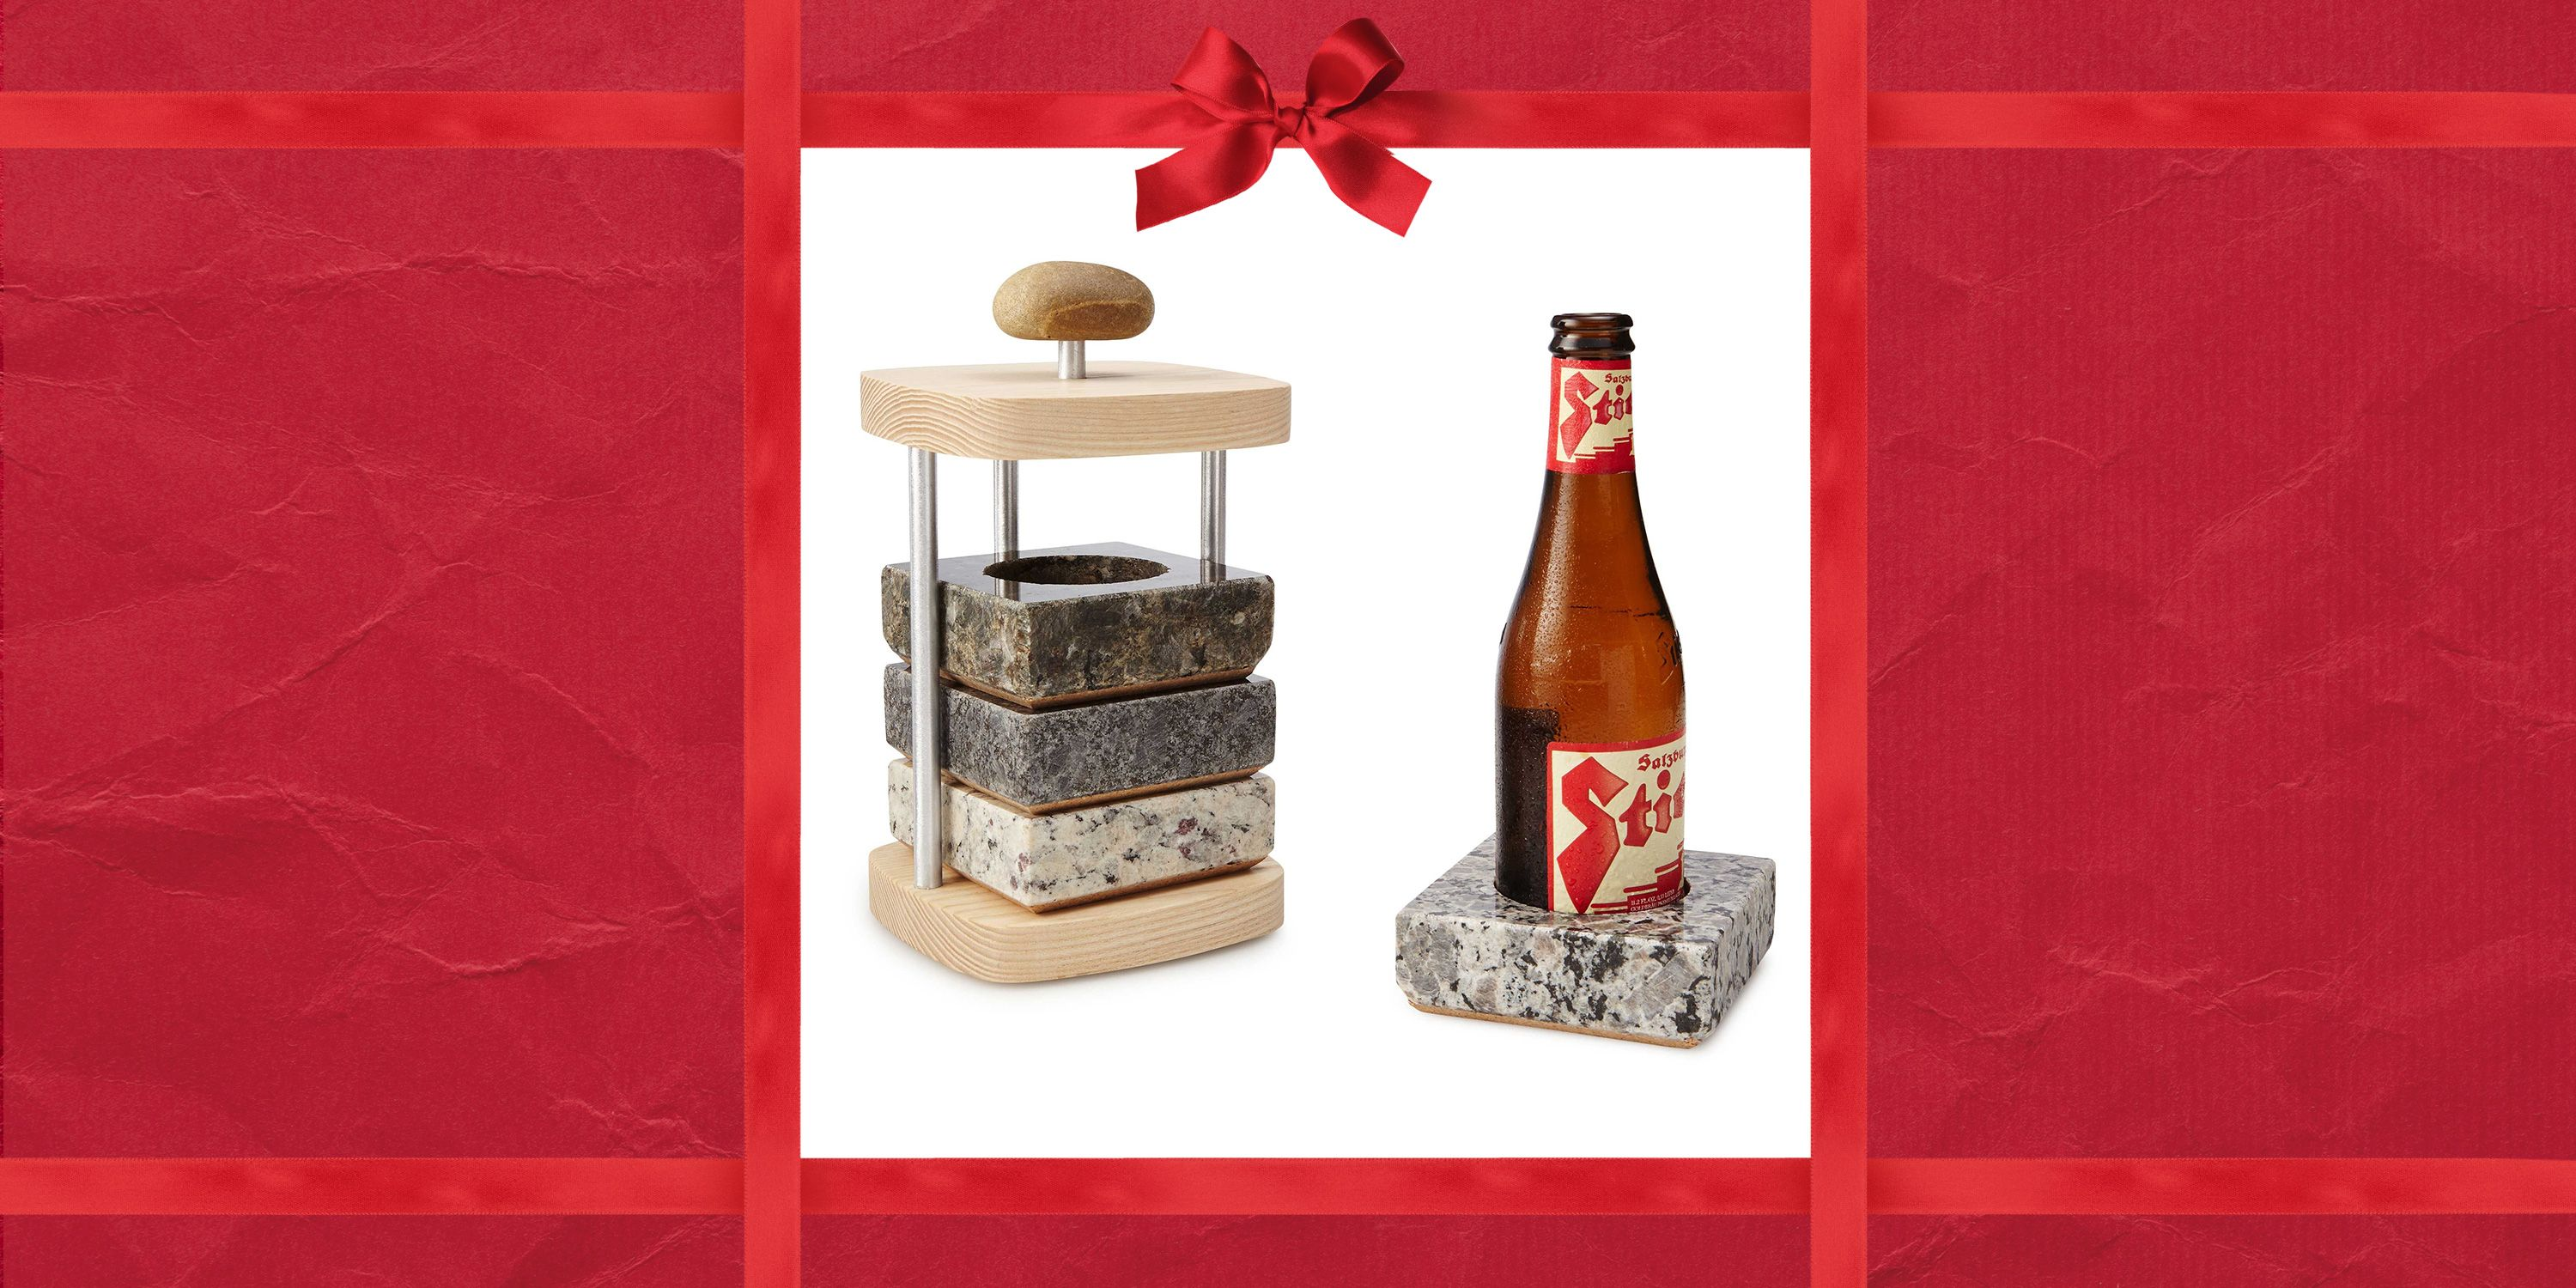 Gifts for dad from daughter ideas for christmas